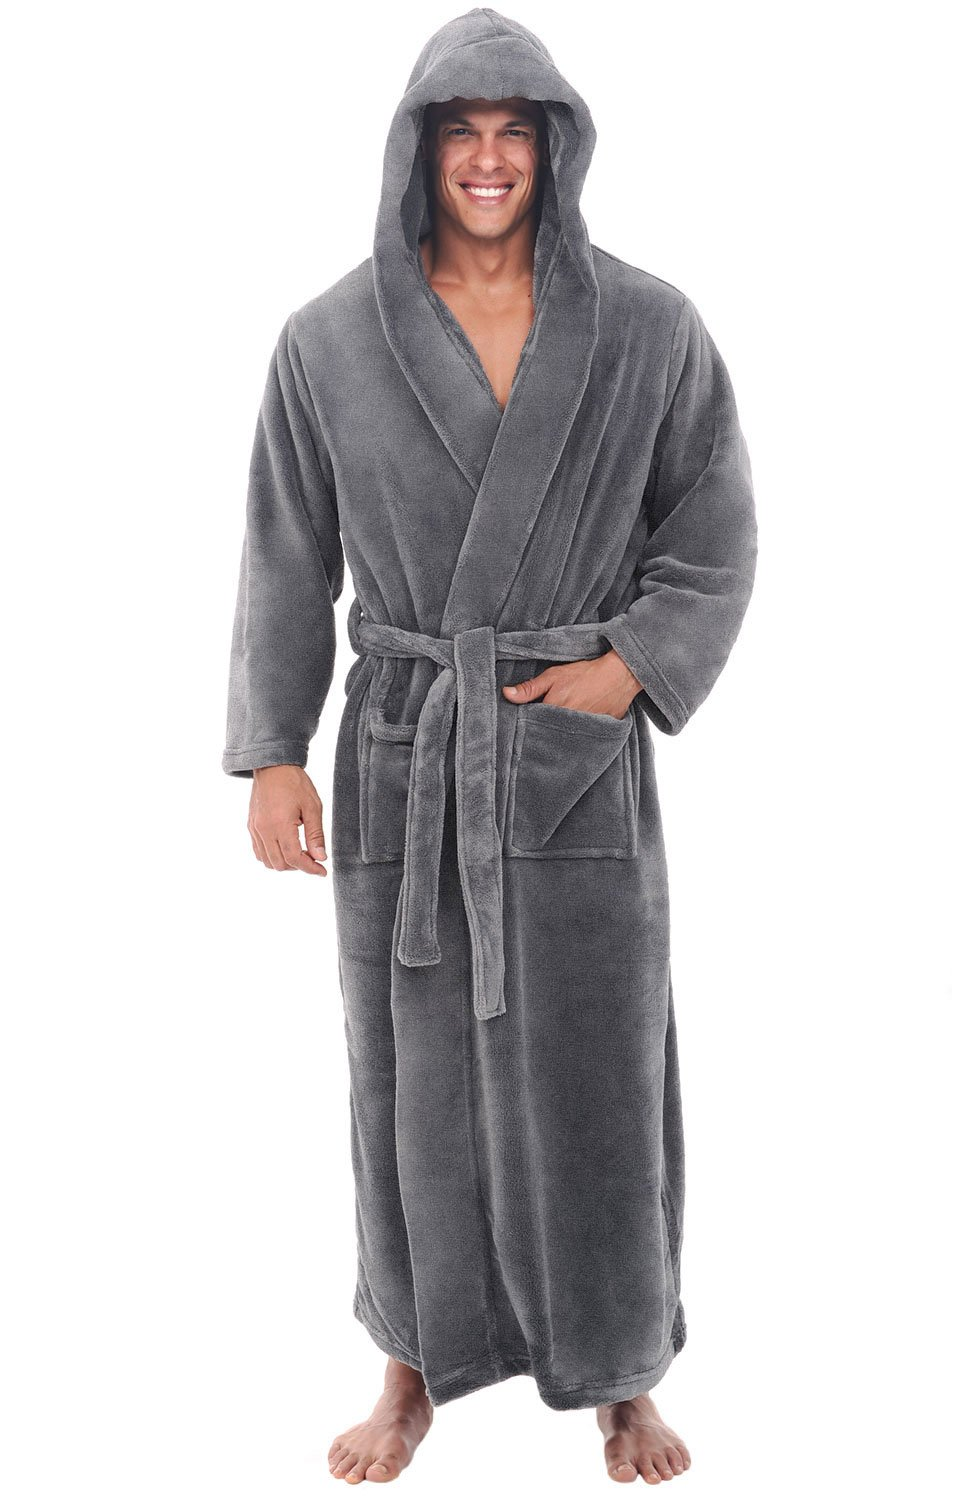 Alexander Del Rossa Mens Fleece Robe, Long Hooded Bathrobe, 3XL 4XL Steel Grey (A0125STL4X)